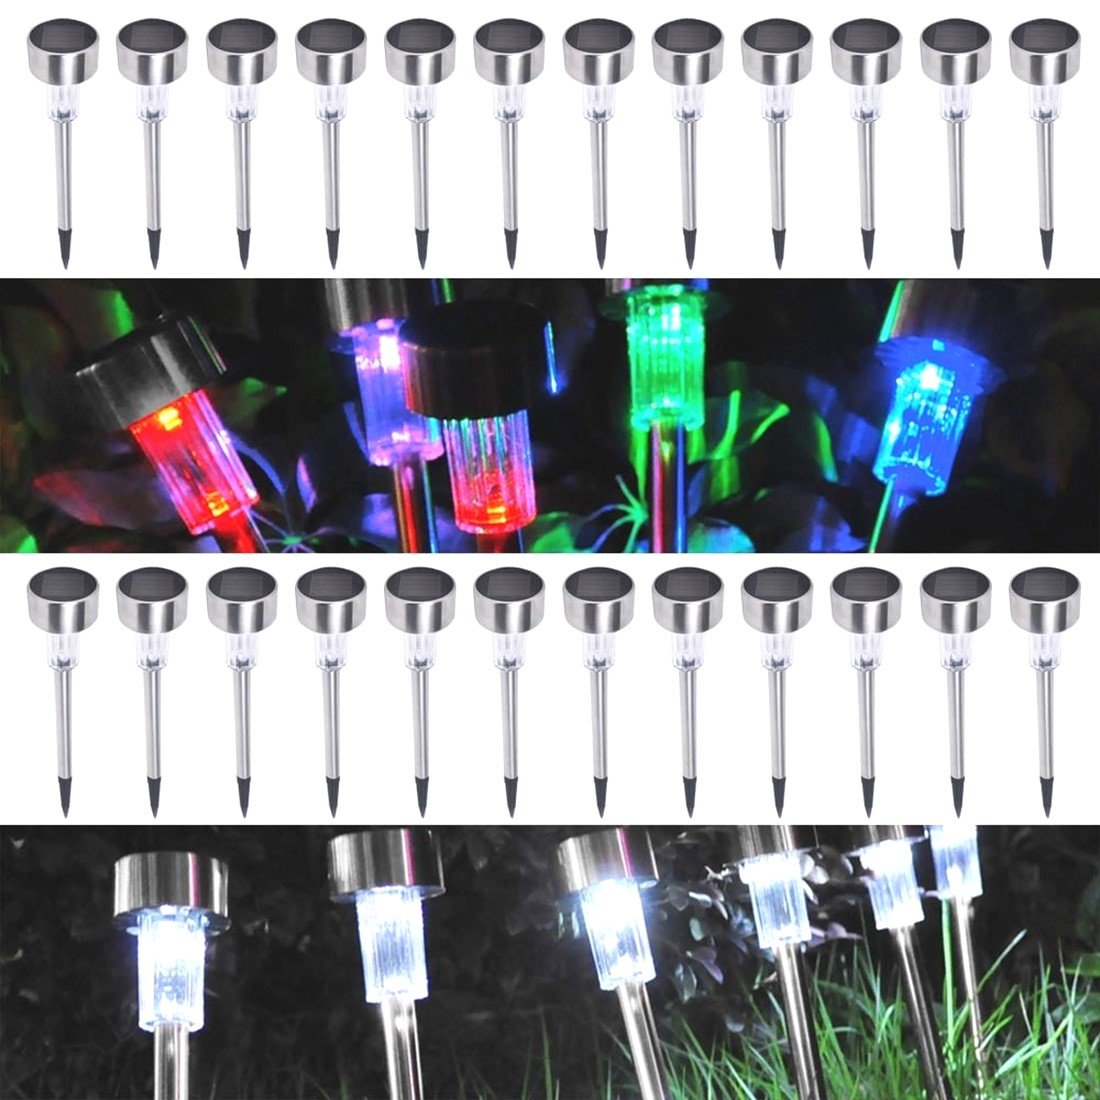 24 Pack Outdoor Stainless Steel LED Solar Power Light w/ White & Color Changing